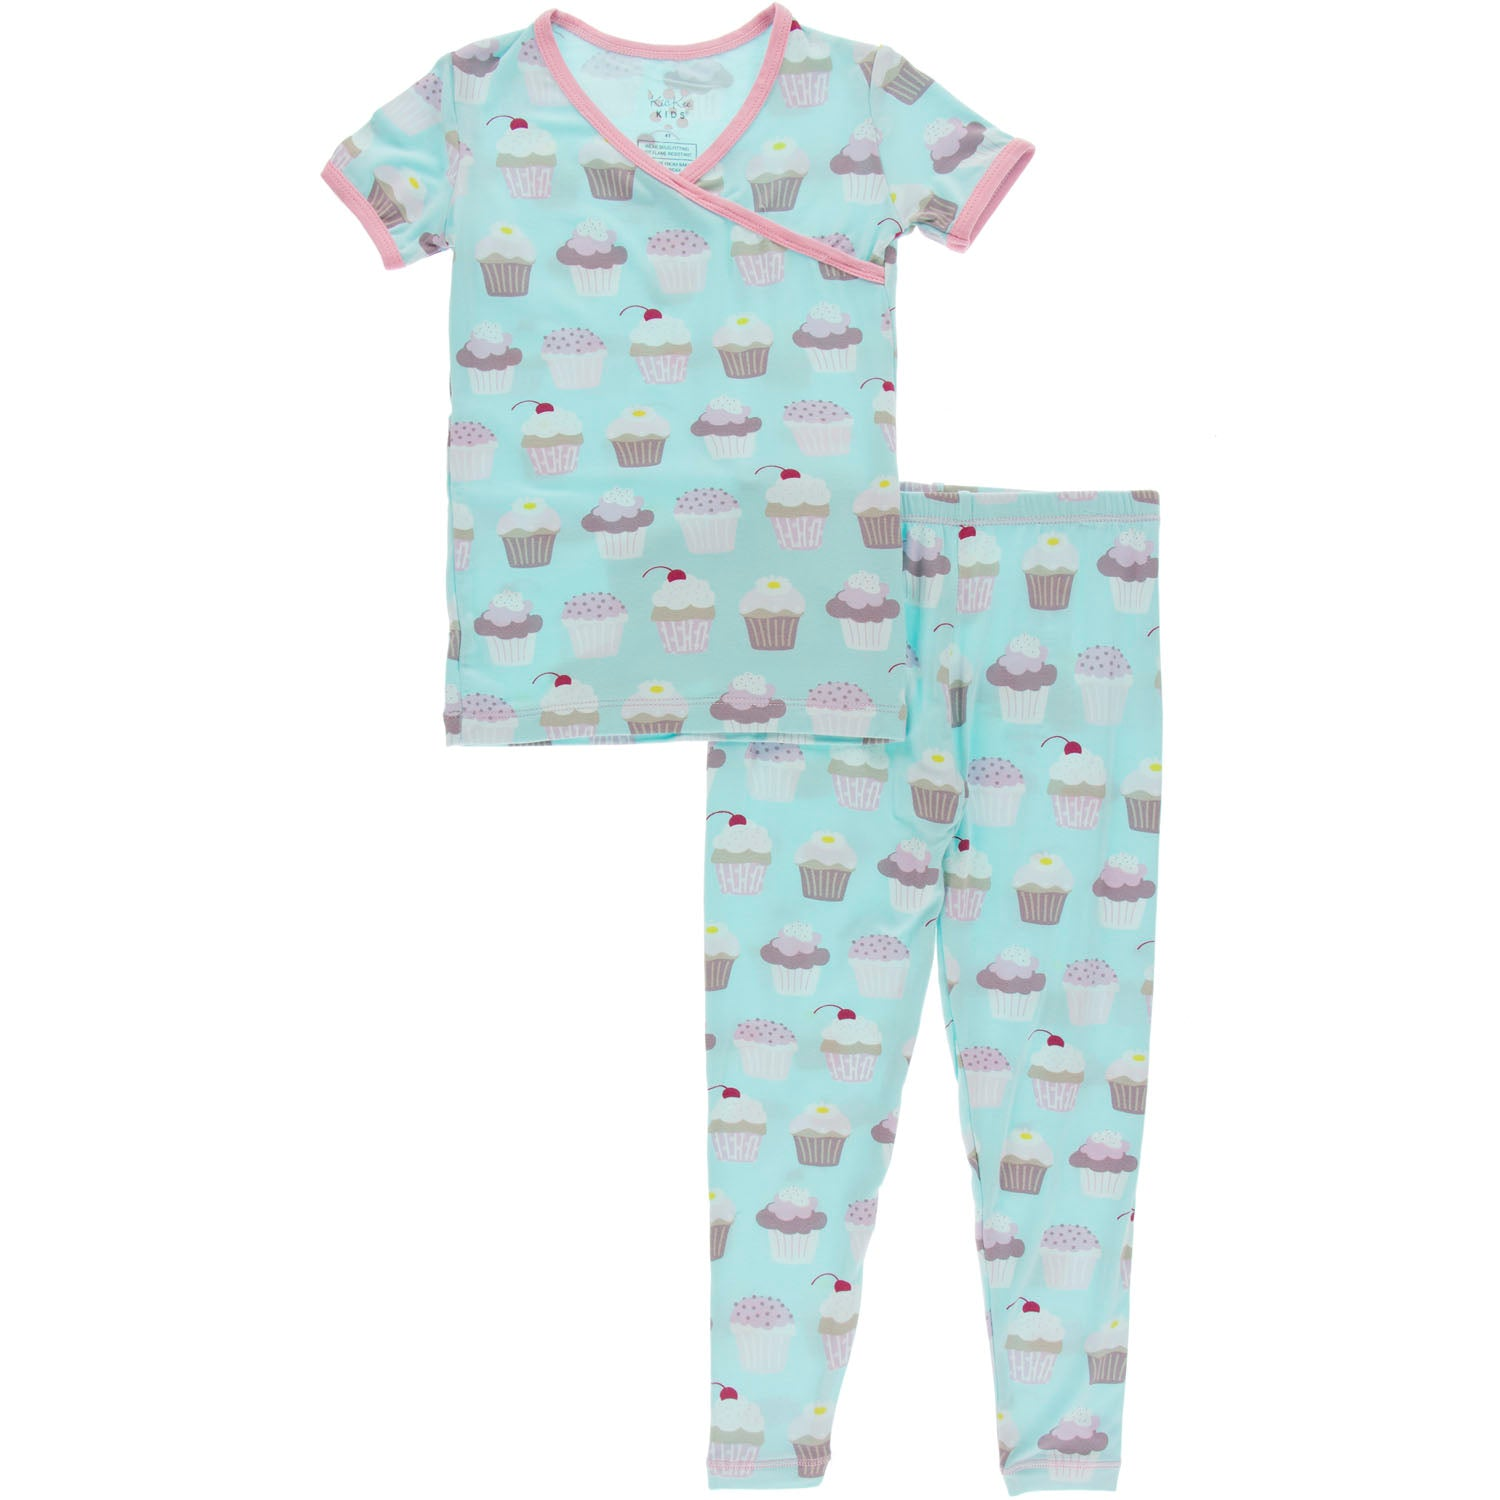 KicKee Pants Short Sleeve Kimono Pajama Set - Summer Sky Cupcakes